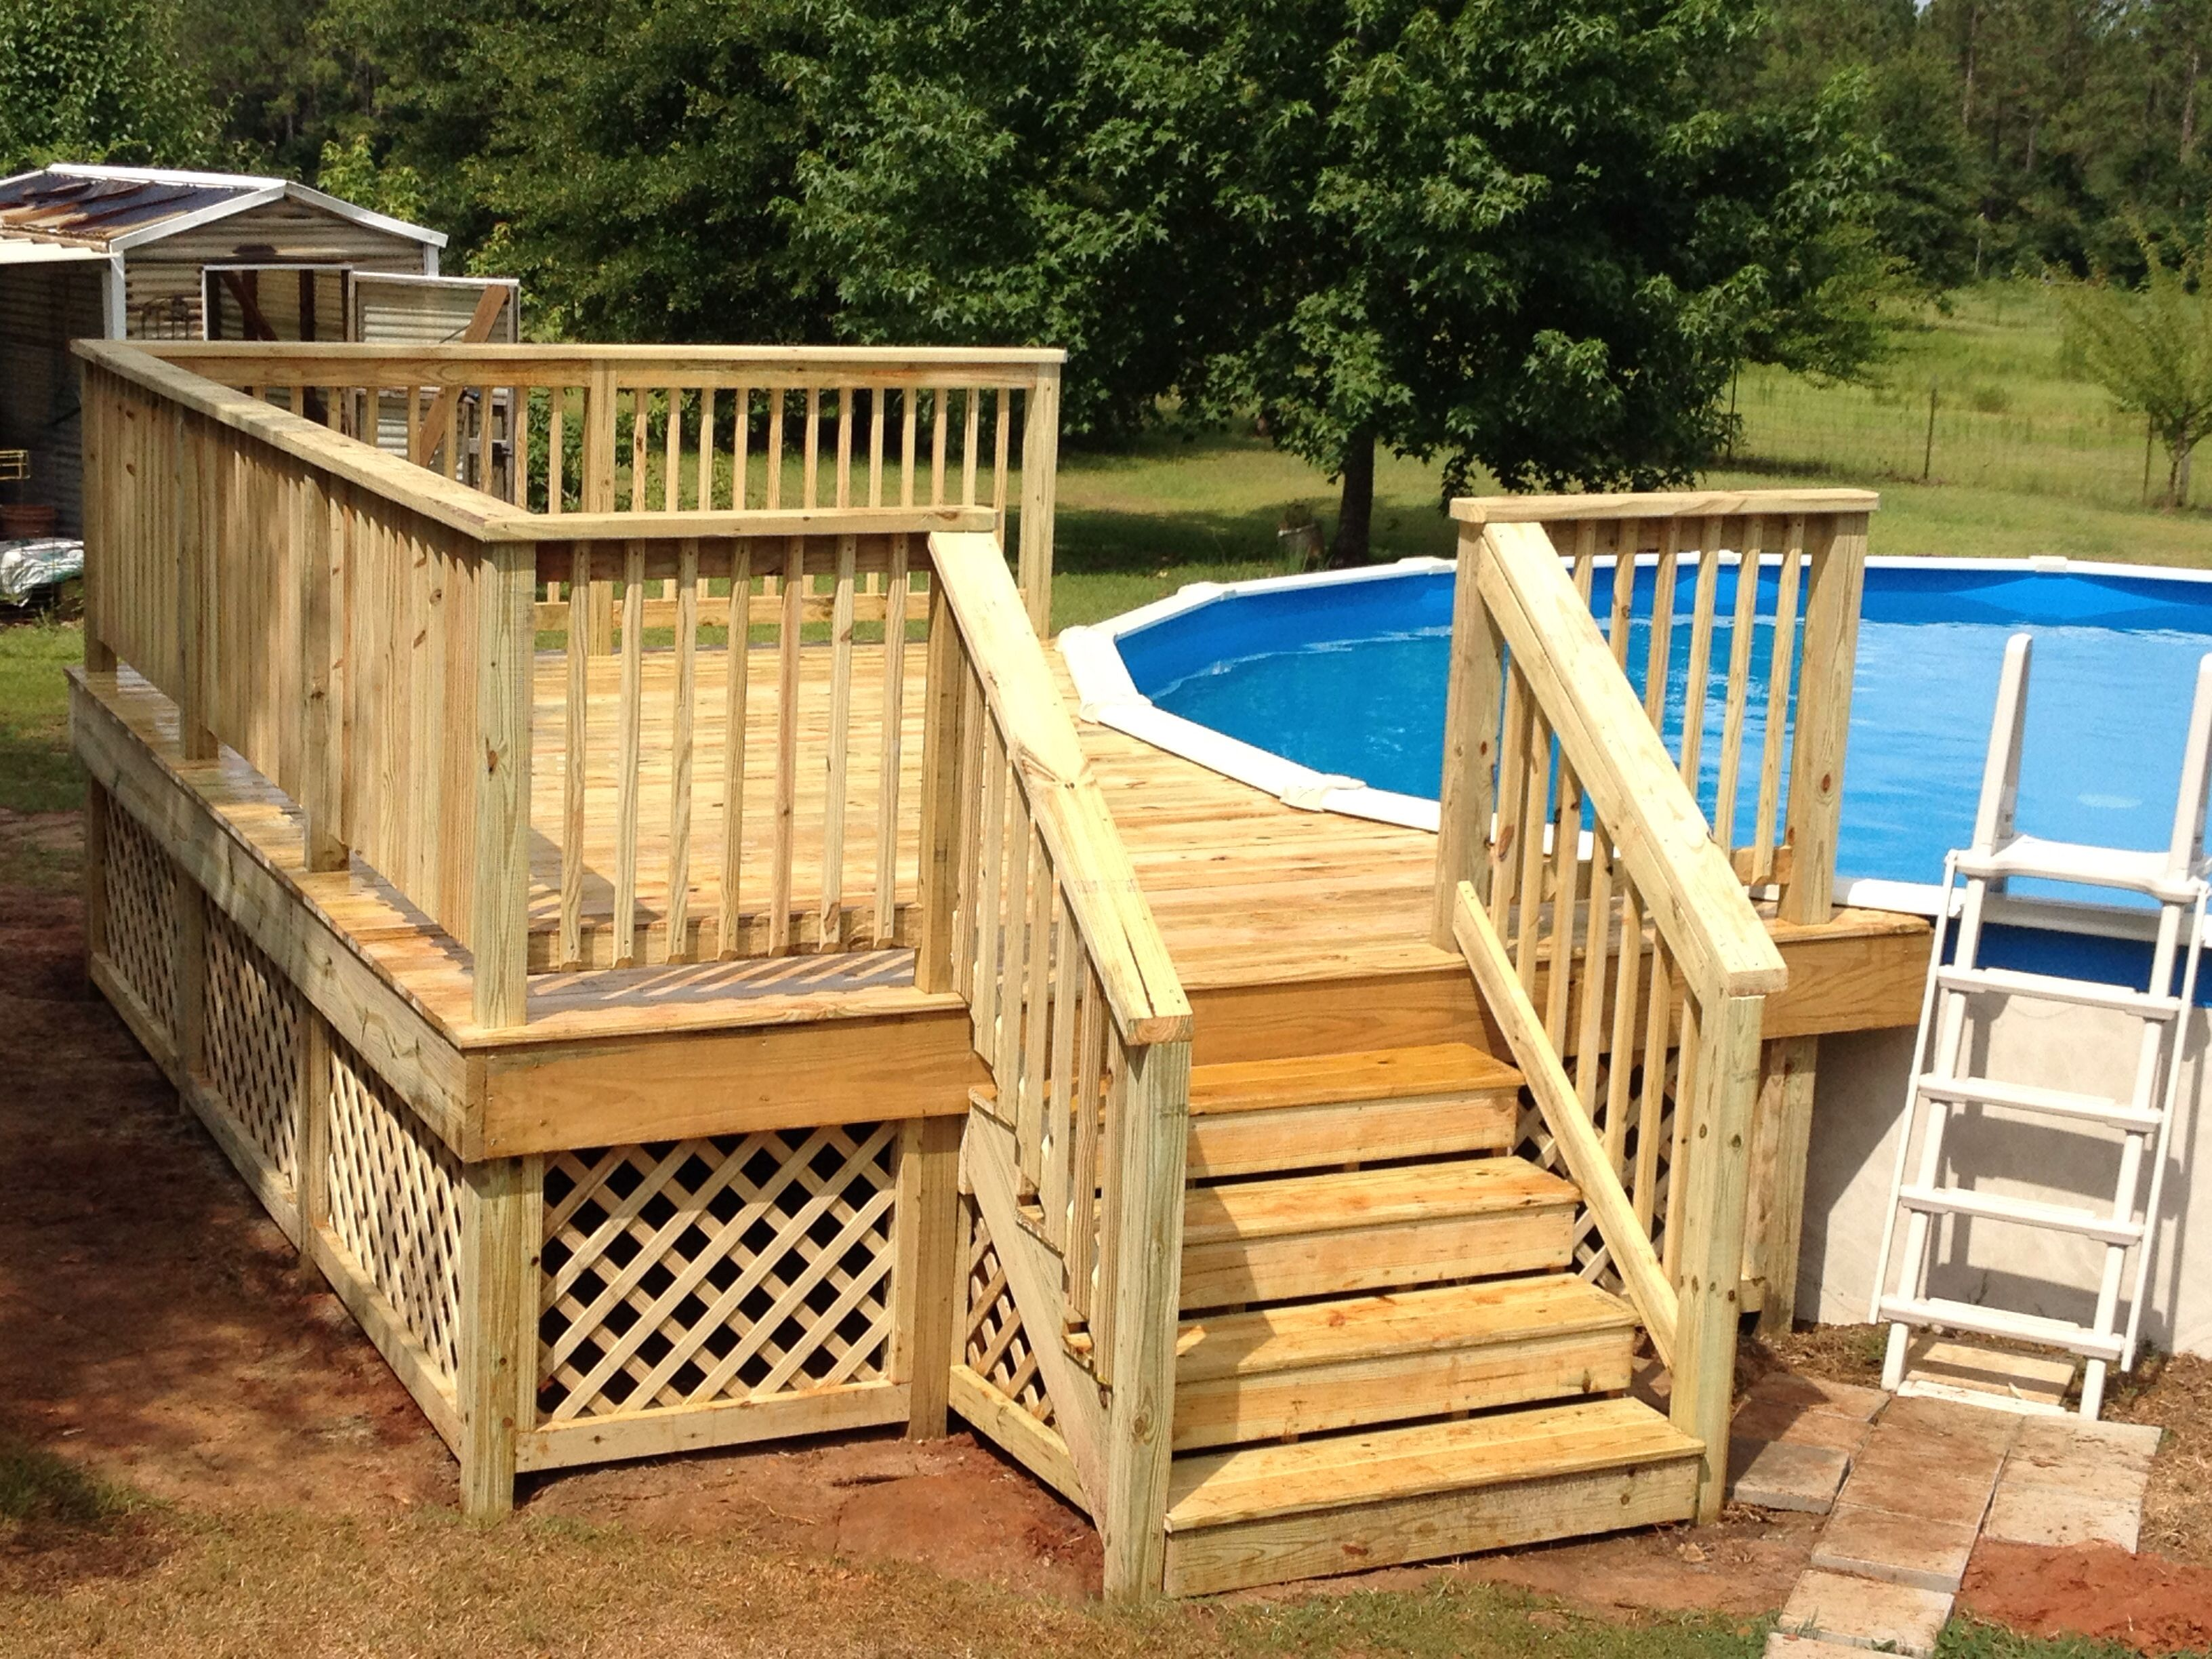 12x16 deck on round pool my projects pinterest for Pool deck design plans